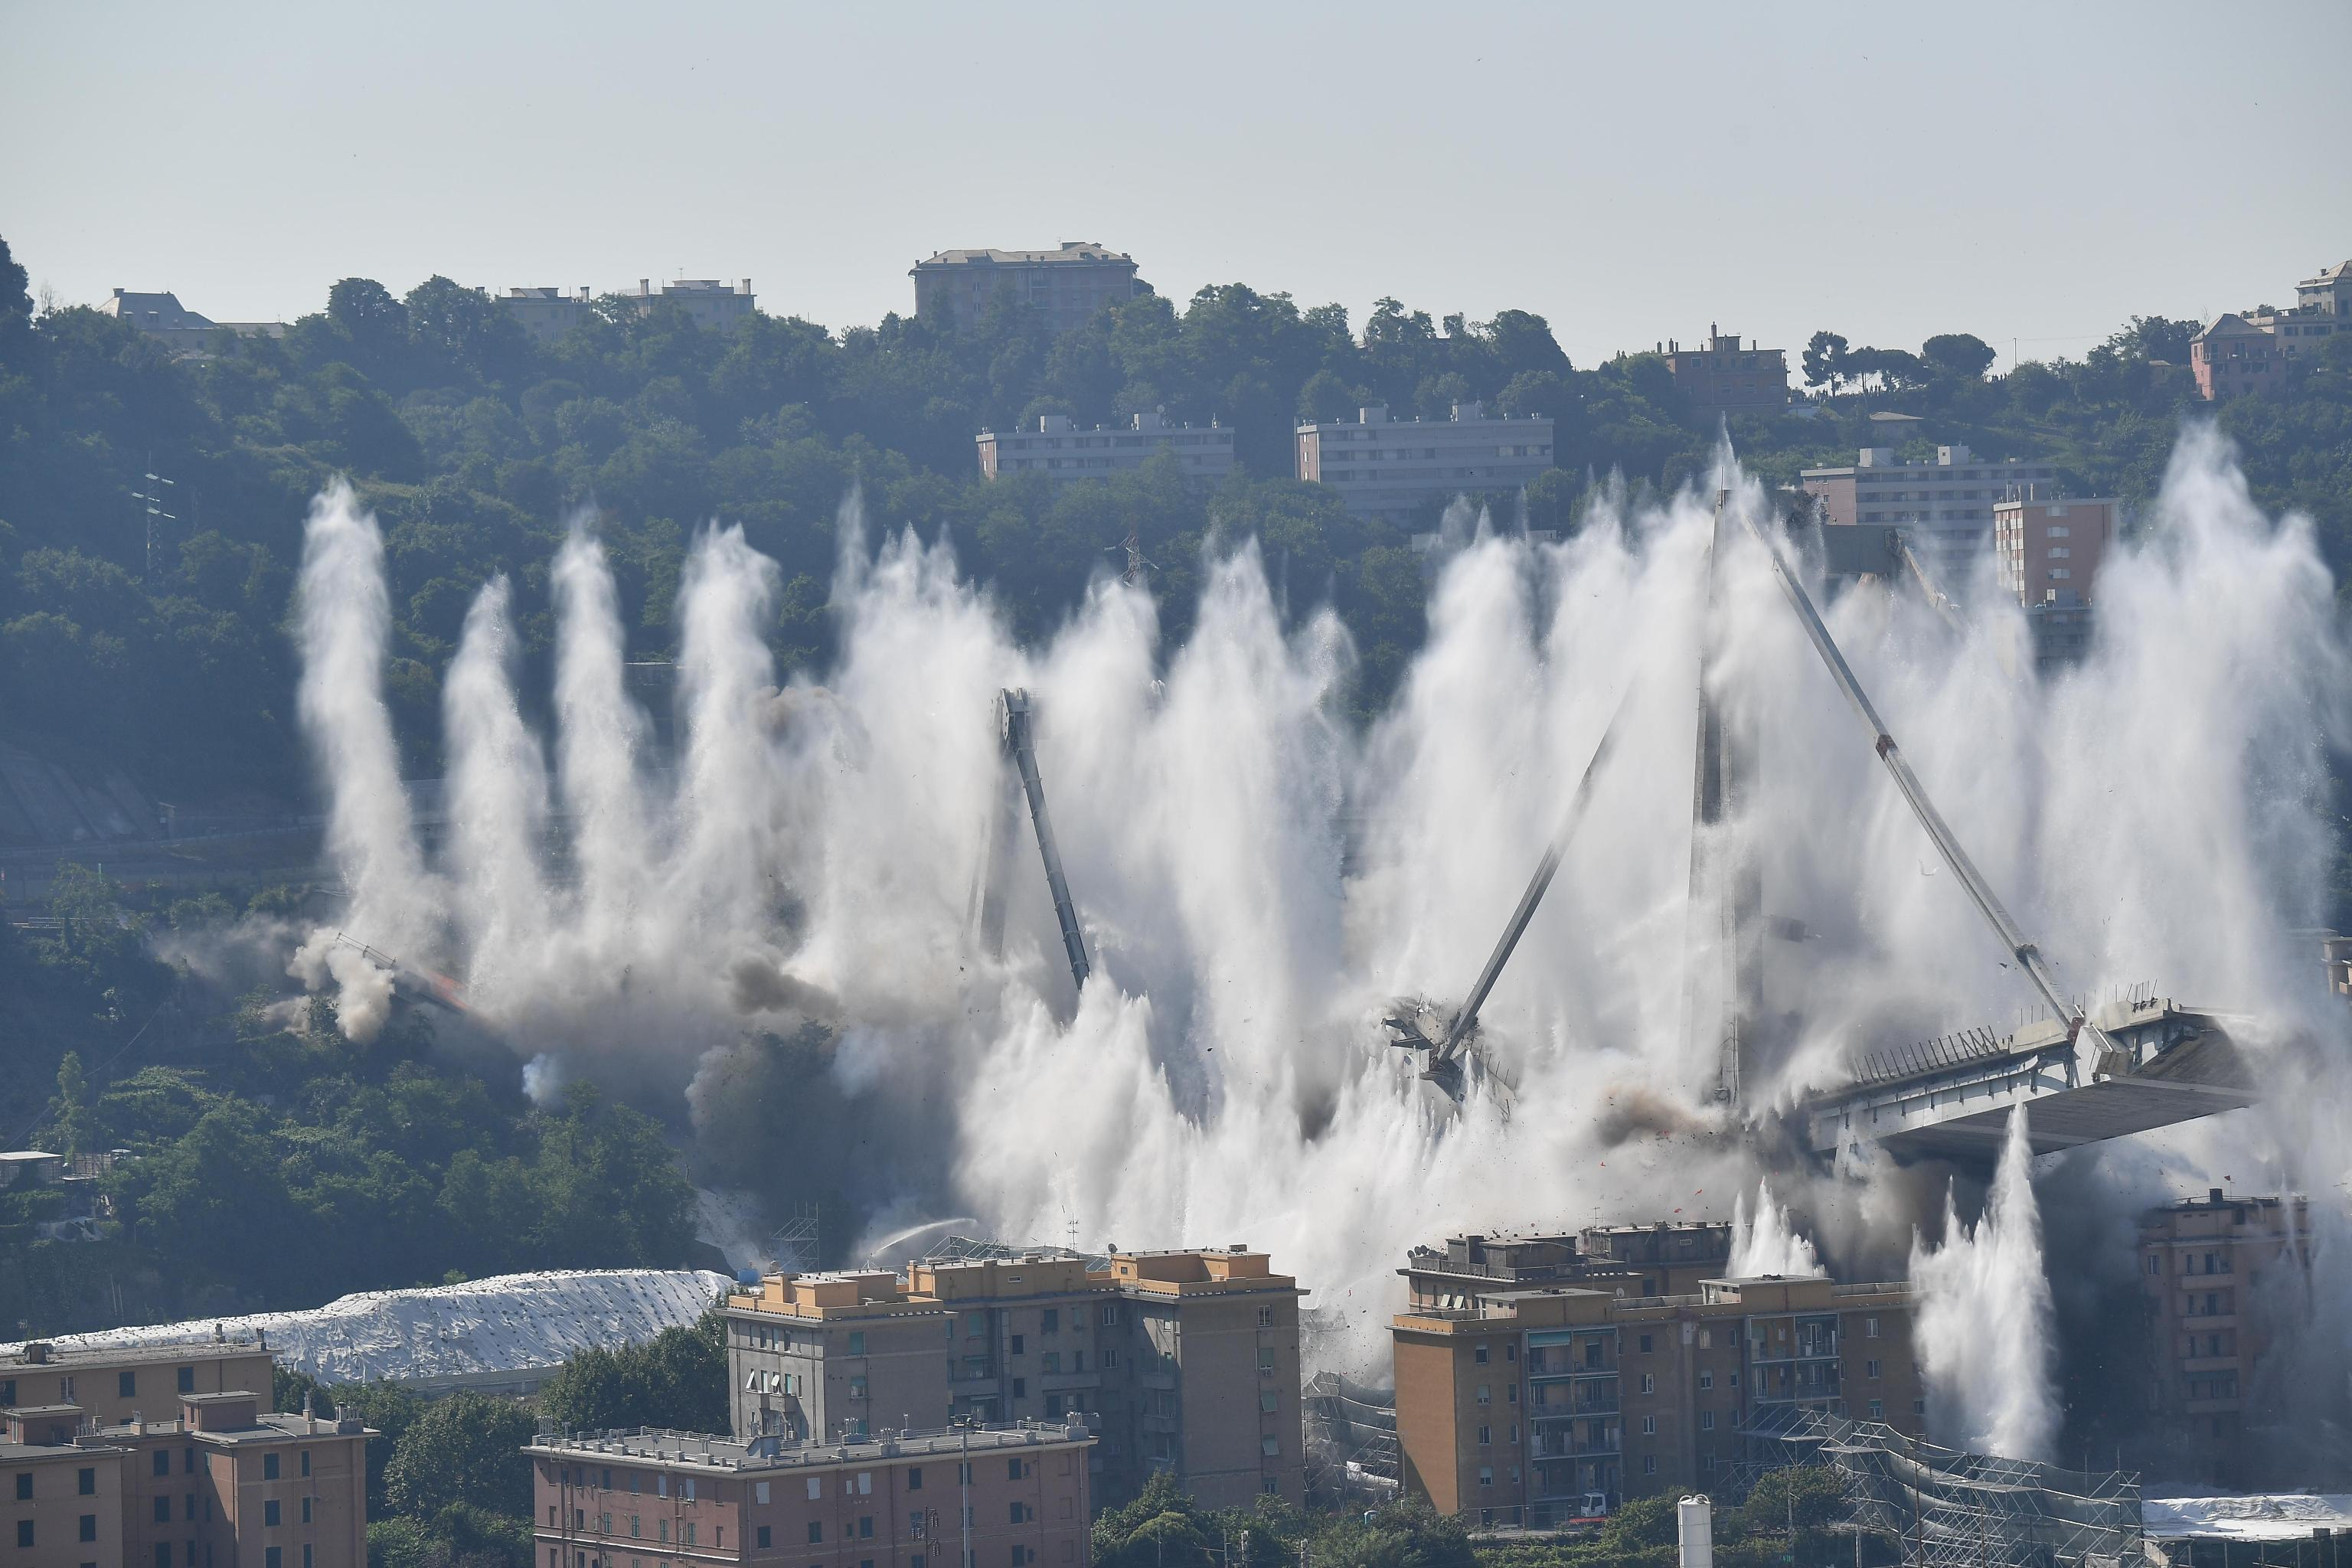 """A general view of the demolition """"pile"""" 10 and 11 Morandi bridge with micro-explosive charges, in Genoa, Italy, 28 june 2019. The new viaduct replacing the Morandi bridge is expected to be completed by  2020. The Morandi bridge partially collapsed on 14 august 2018 killing 43 people. ANSA/LUCA ZENNARO"""